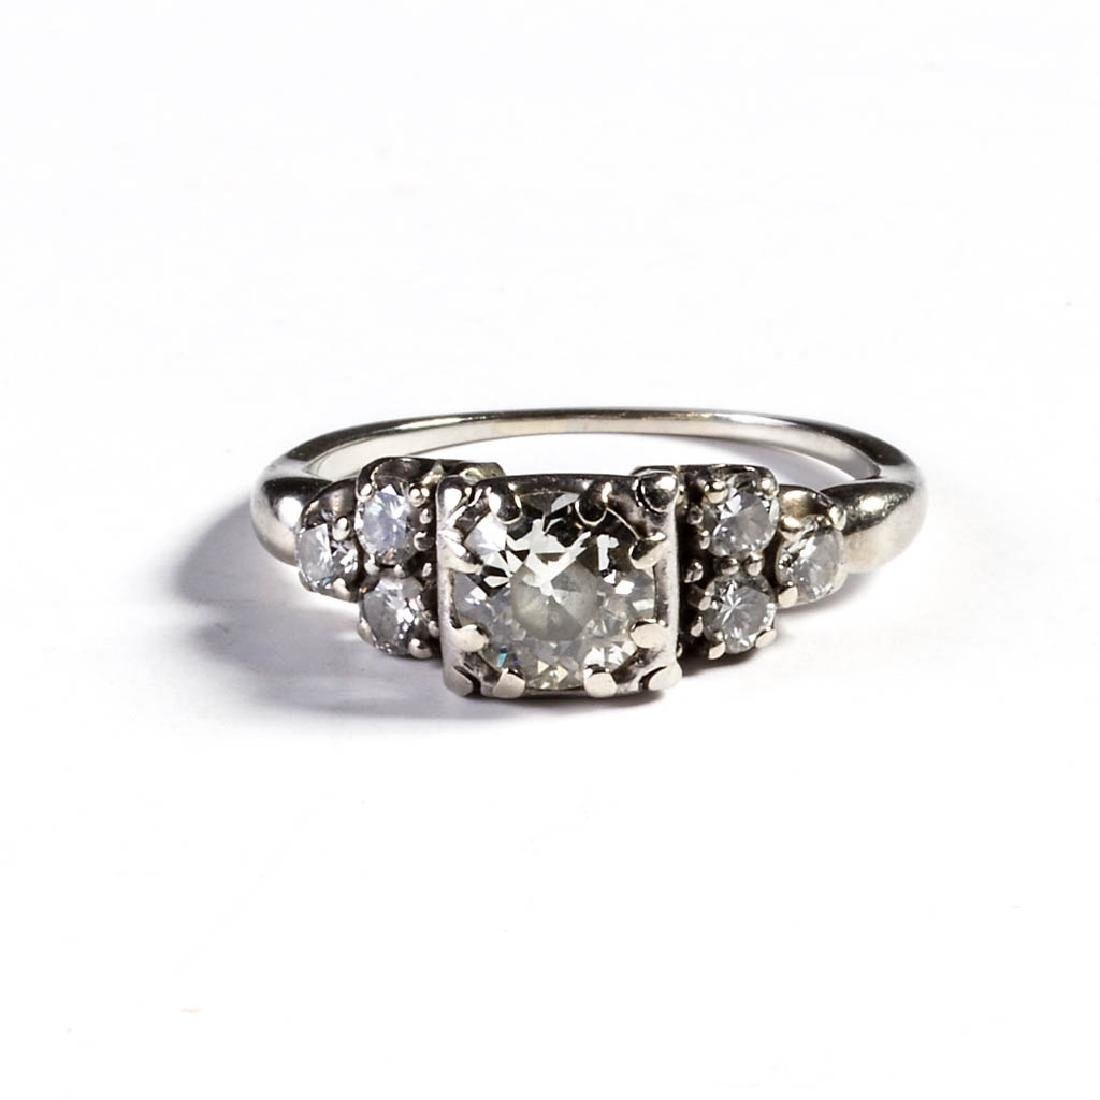 VINTAGE LADY'S 18K WHITE GOLD AND DIAMOND ENGAGEMENT